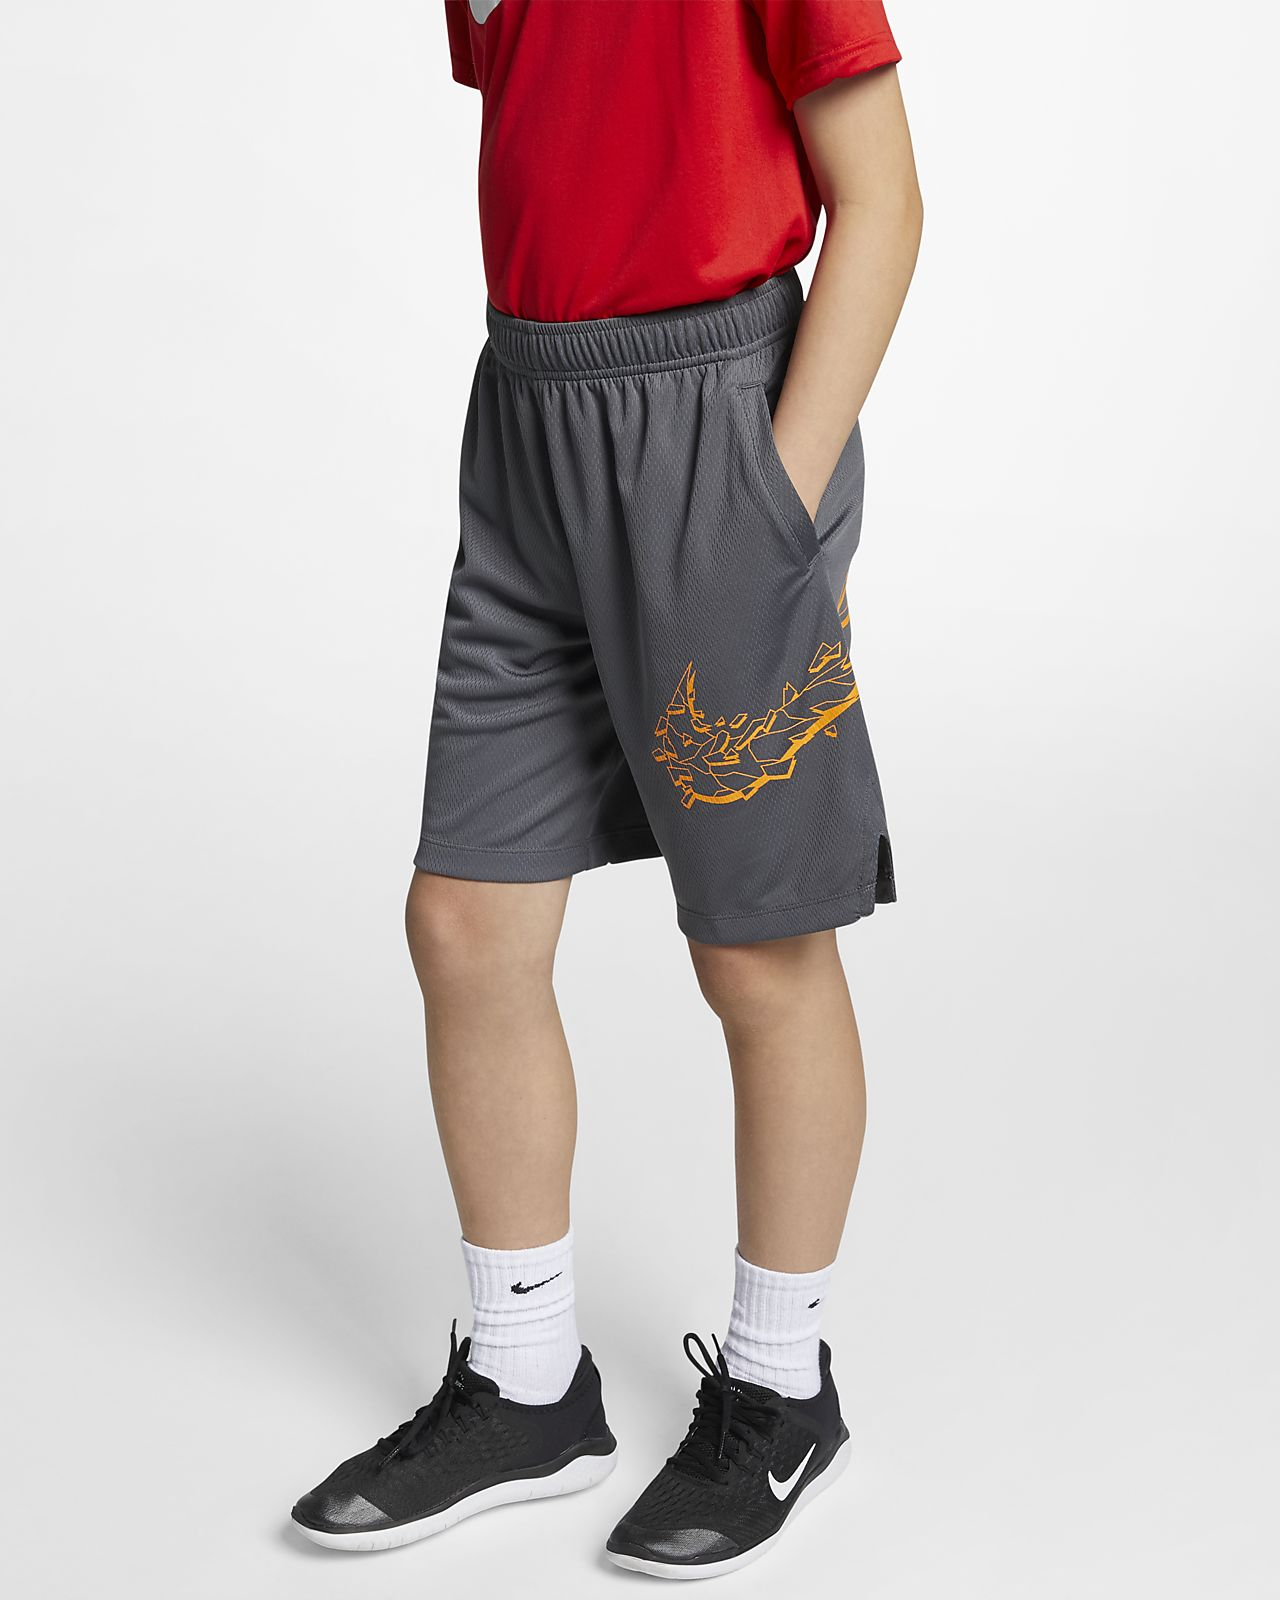 Shorts da training con grafica Nike Dri-FIT - Ragazzo